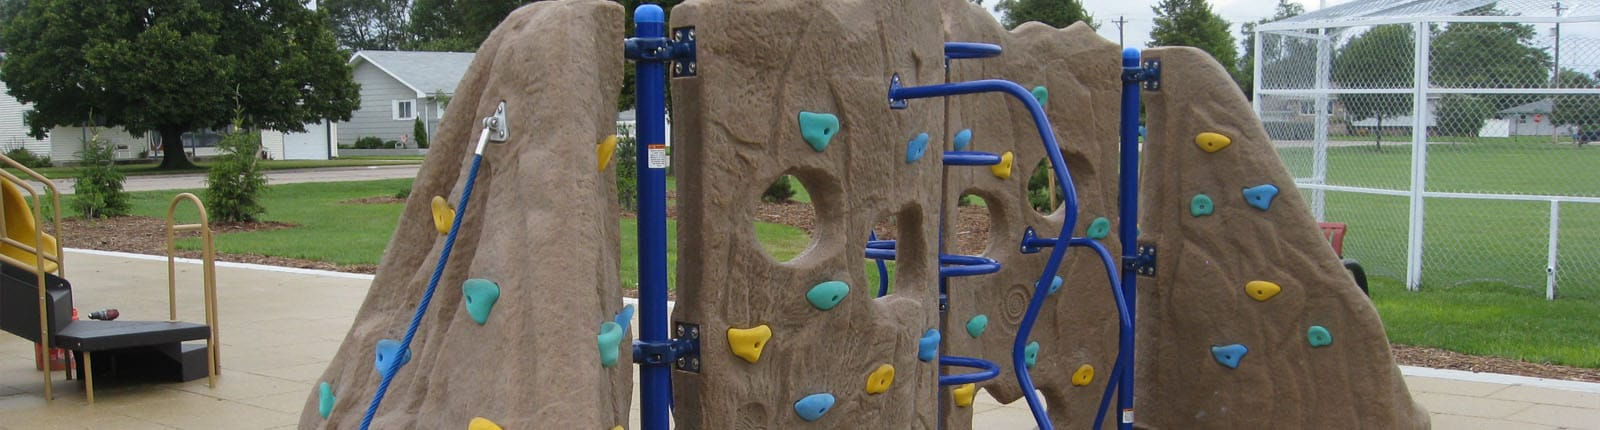 Modular Play Rock Climbing Wall | Sterling West